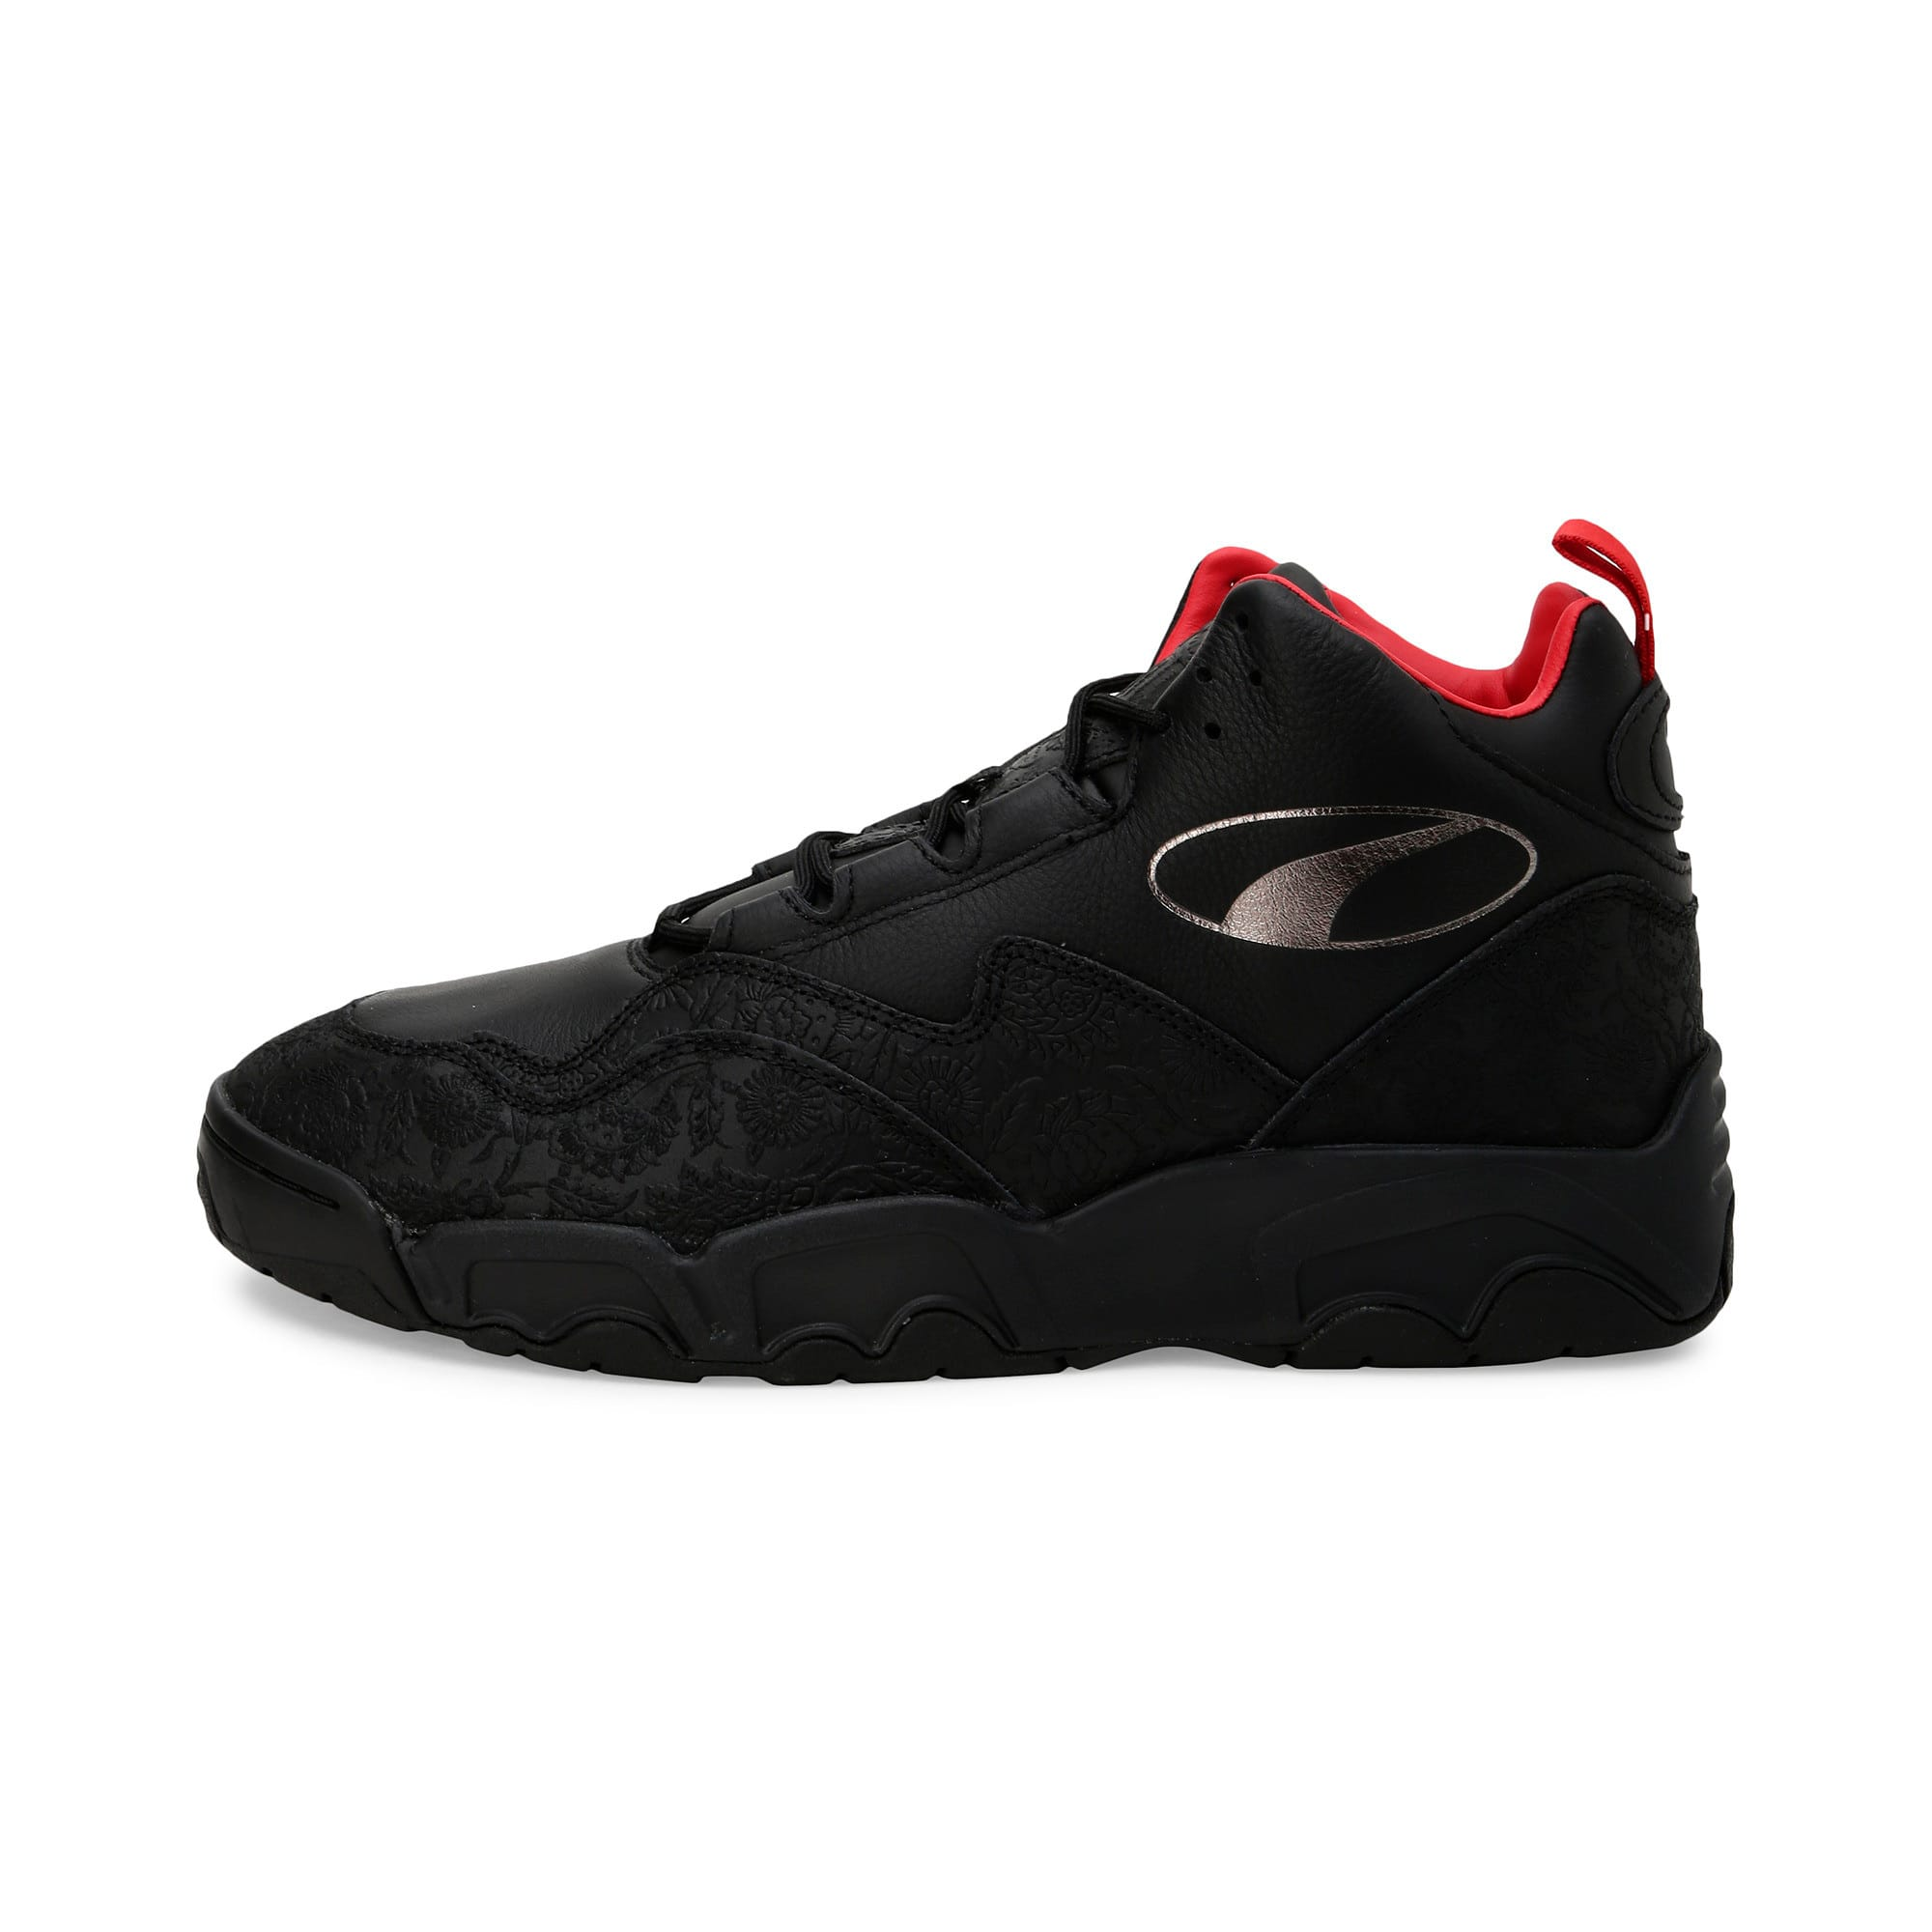 Thumbnail 1 of Source Mid World Cup Trainers, P Blk-Bronze-High Risk Red, medium-IND